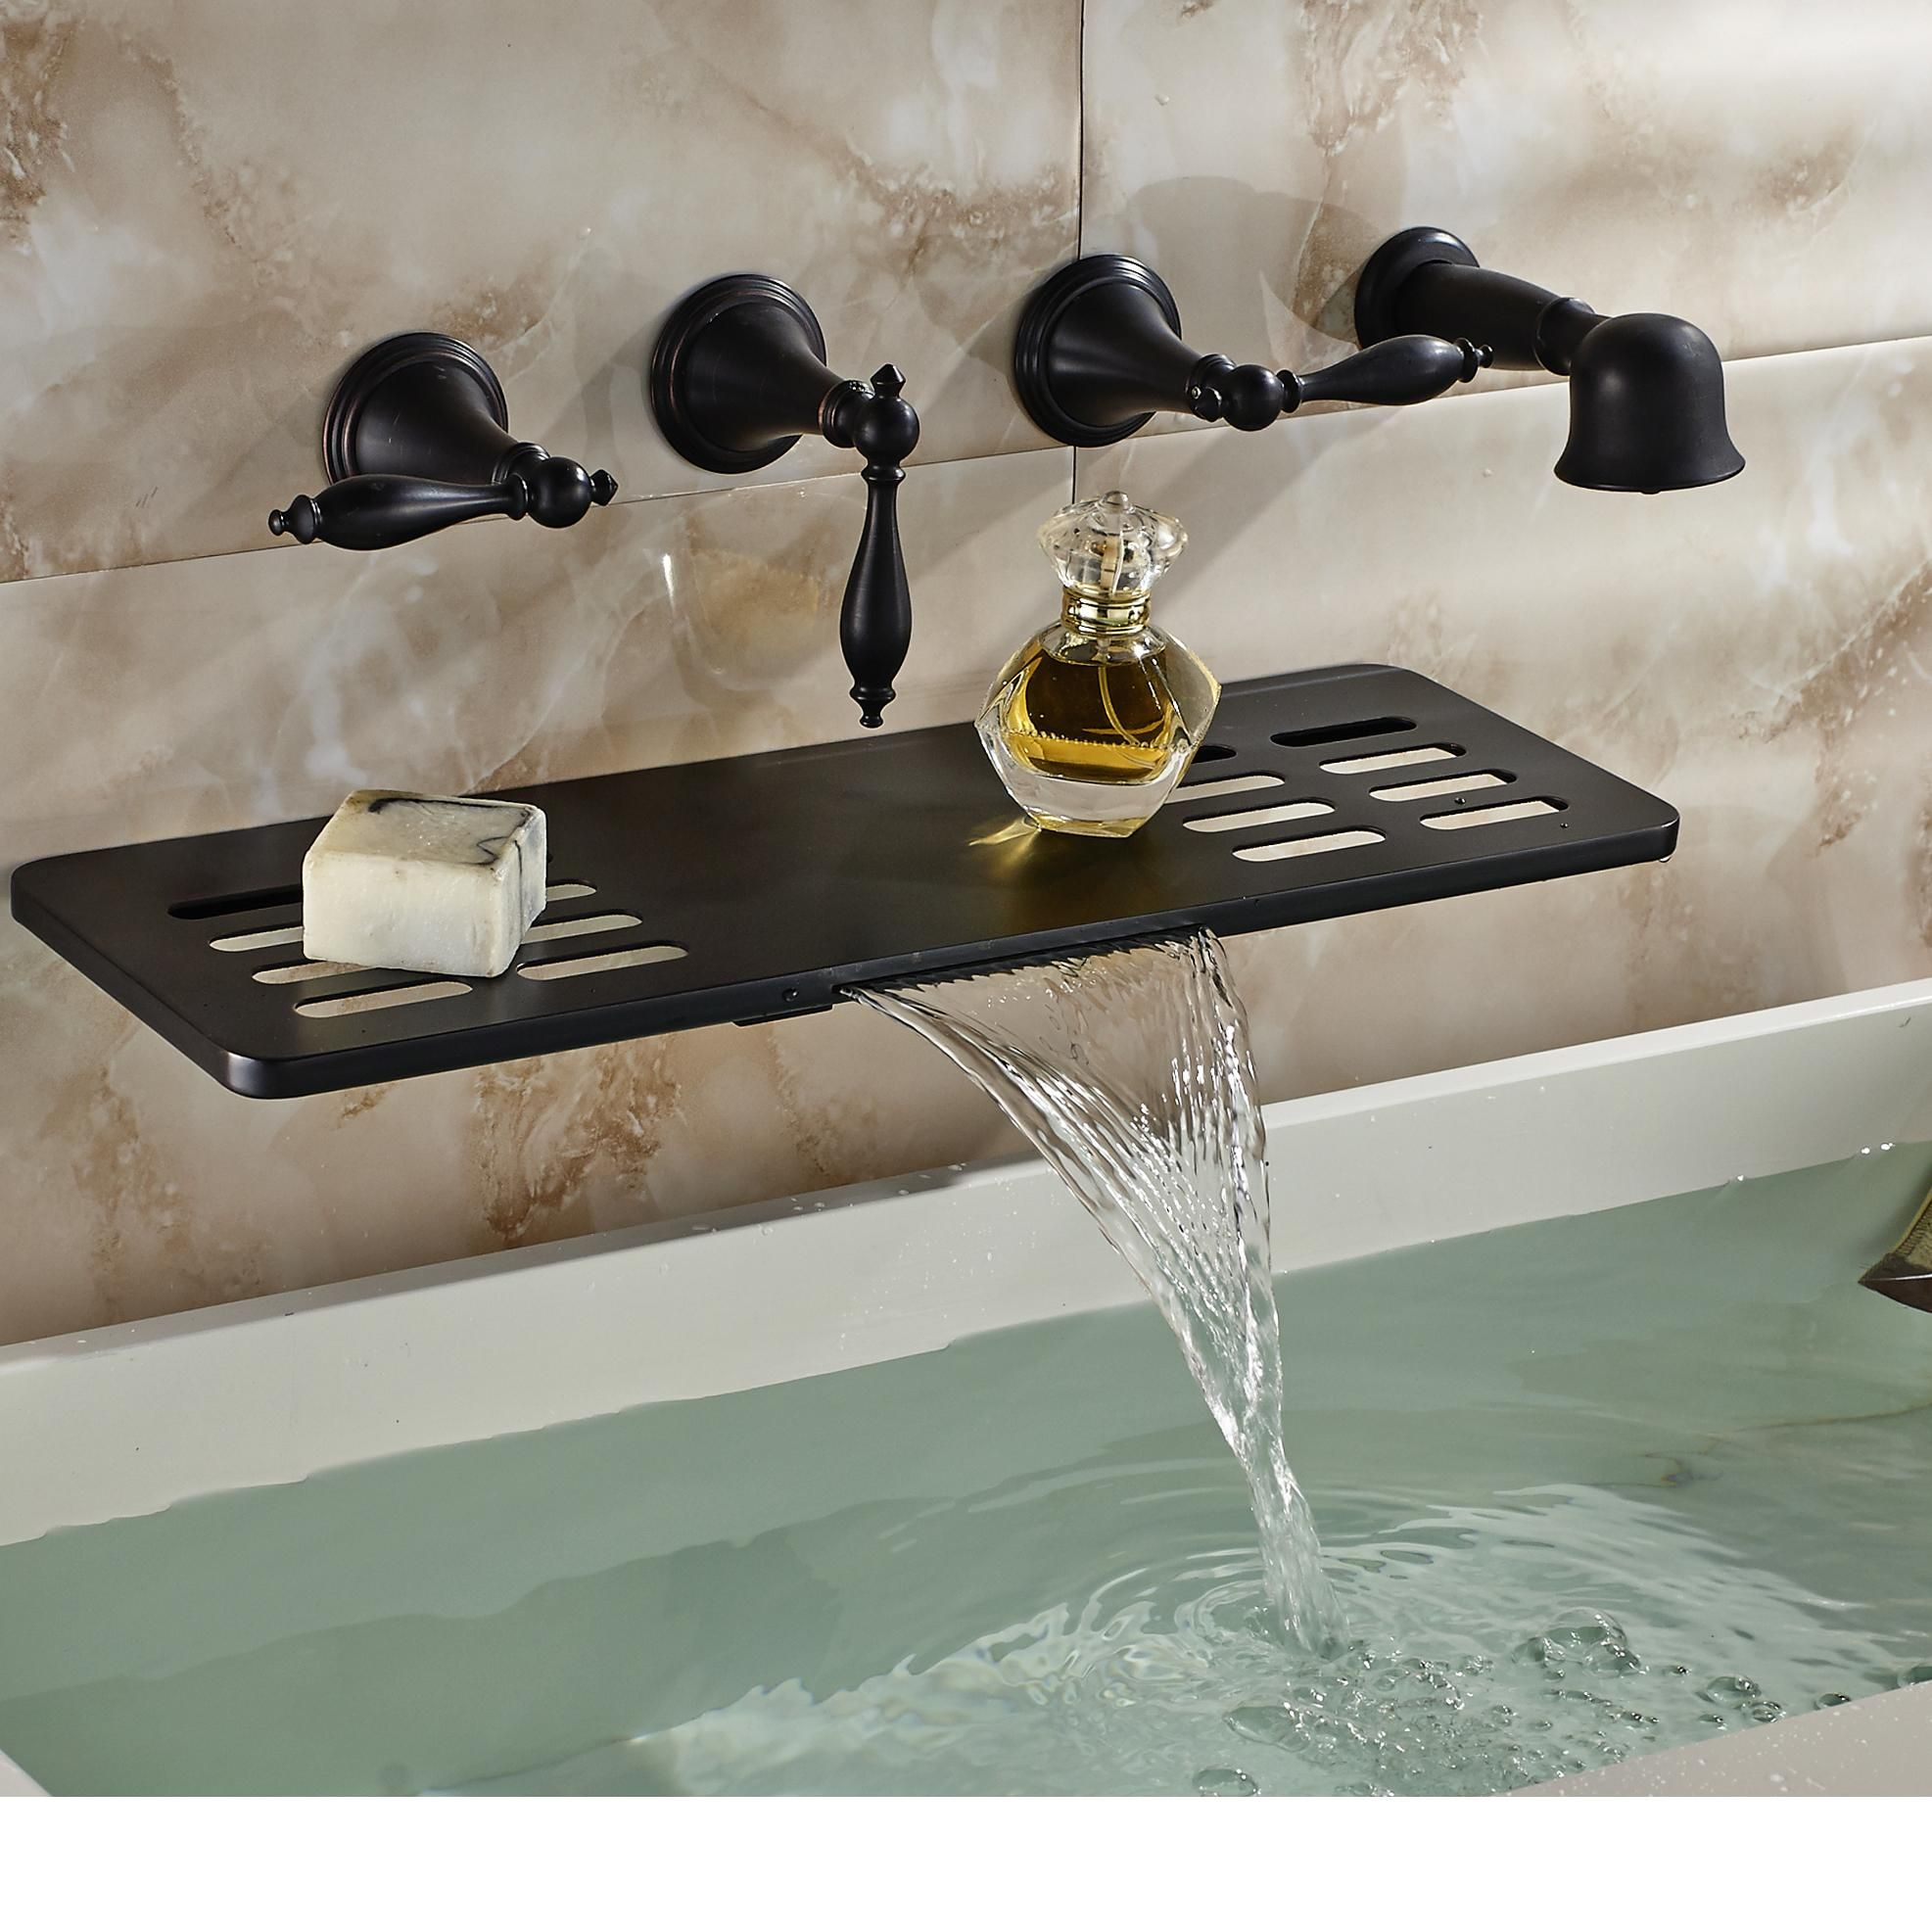 tub moen faucets parts kohler faucet fountain lowes bathtub waterfall bathroom for the